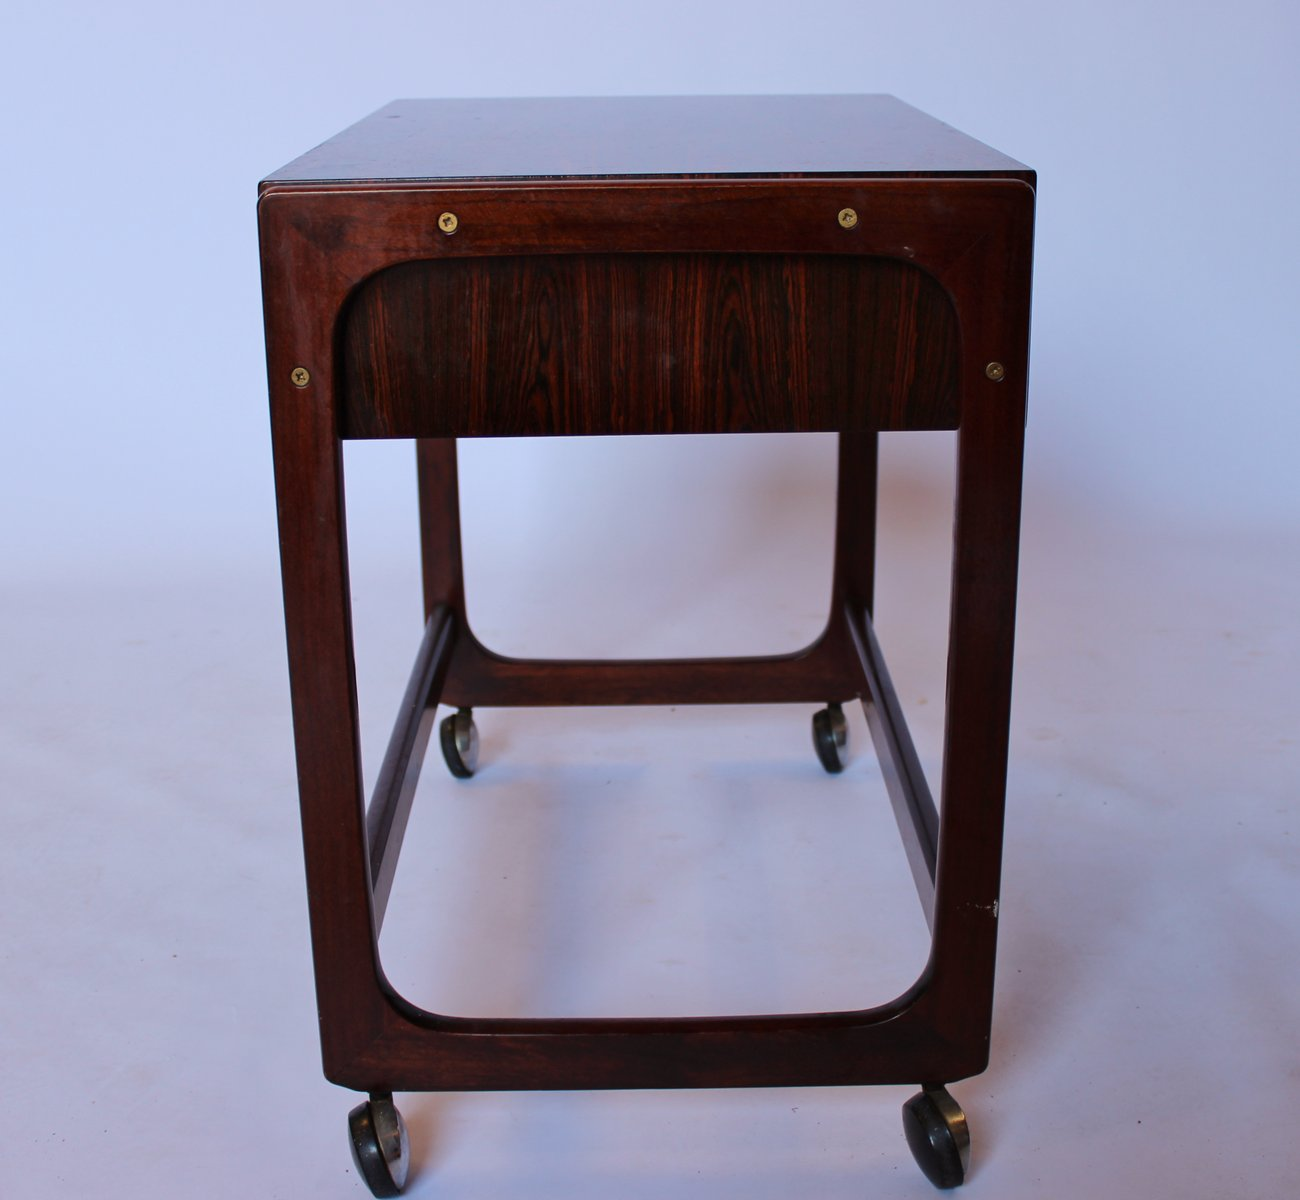 Small Work Table in Rosewood with Wheels from Gelsted ...